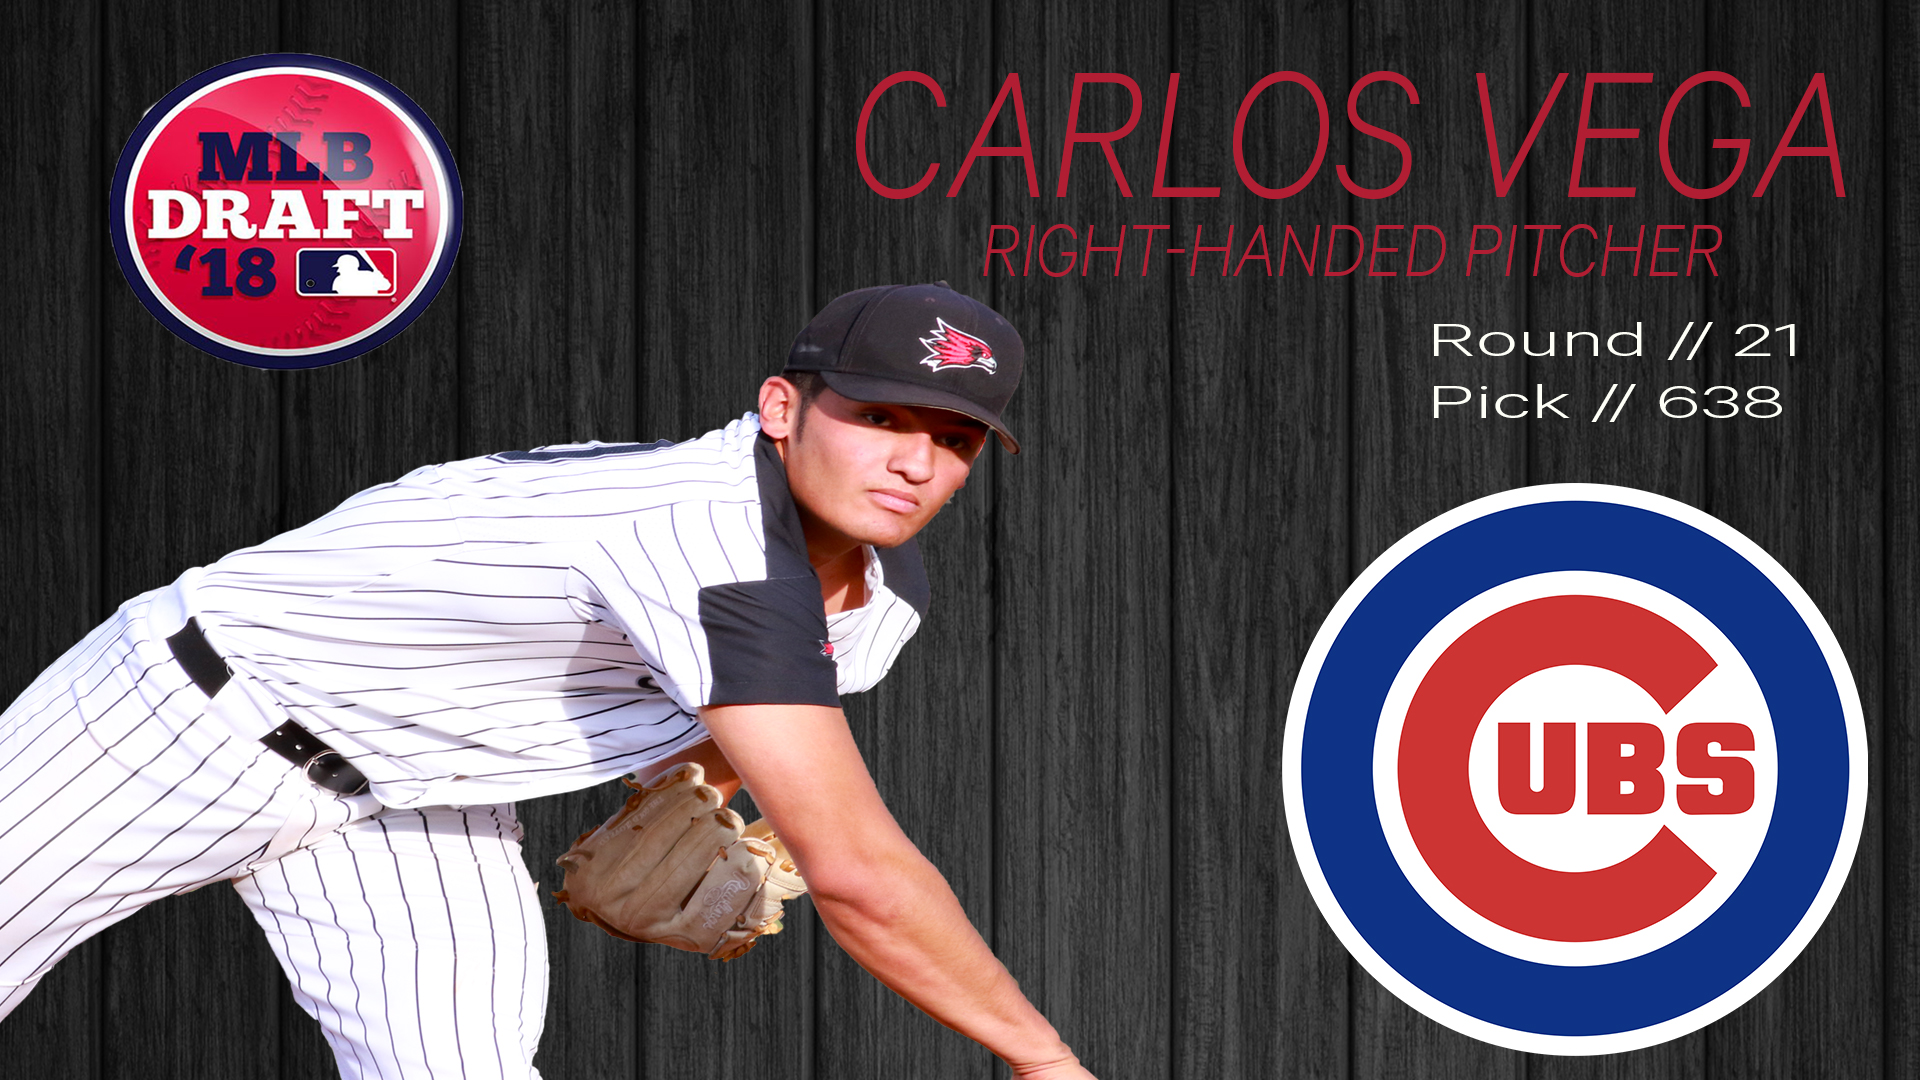 Vega Drafted By The Chicago Cubs Southeast Missouri State